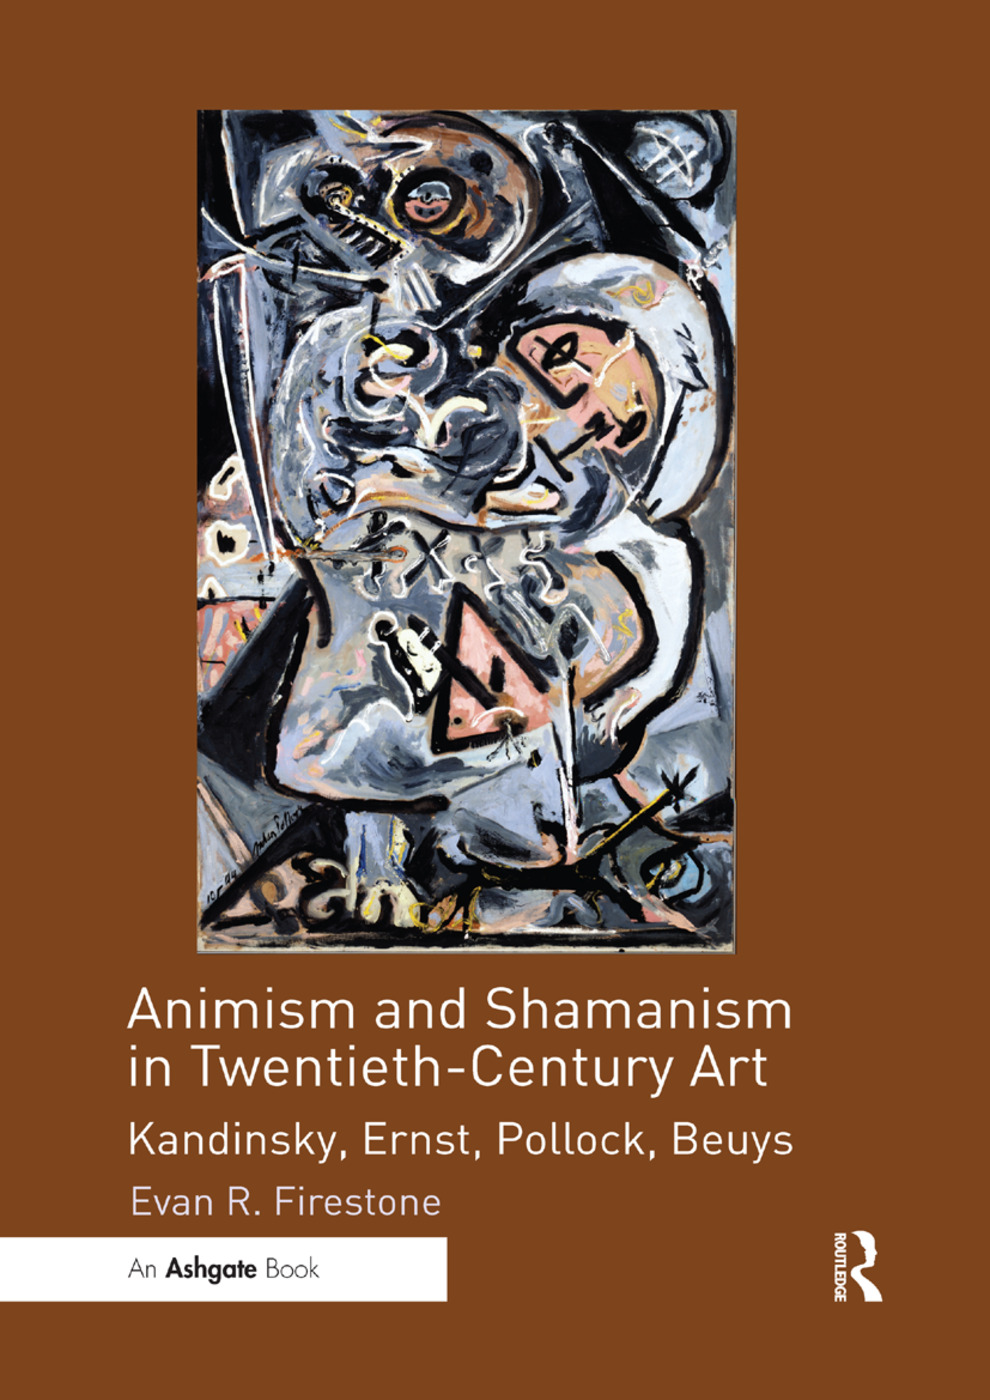 Animism and Shamanism in Twentieth-Century Art: Kandinsky, Ernst, Pollock, Beuys, 1st Edition (Paperback) book cover